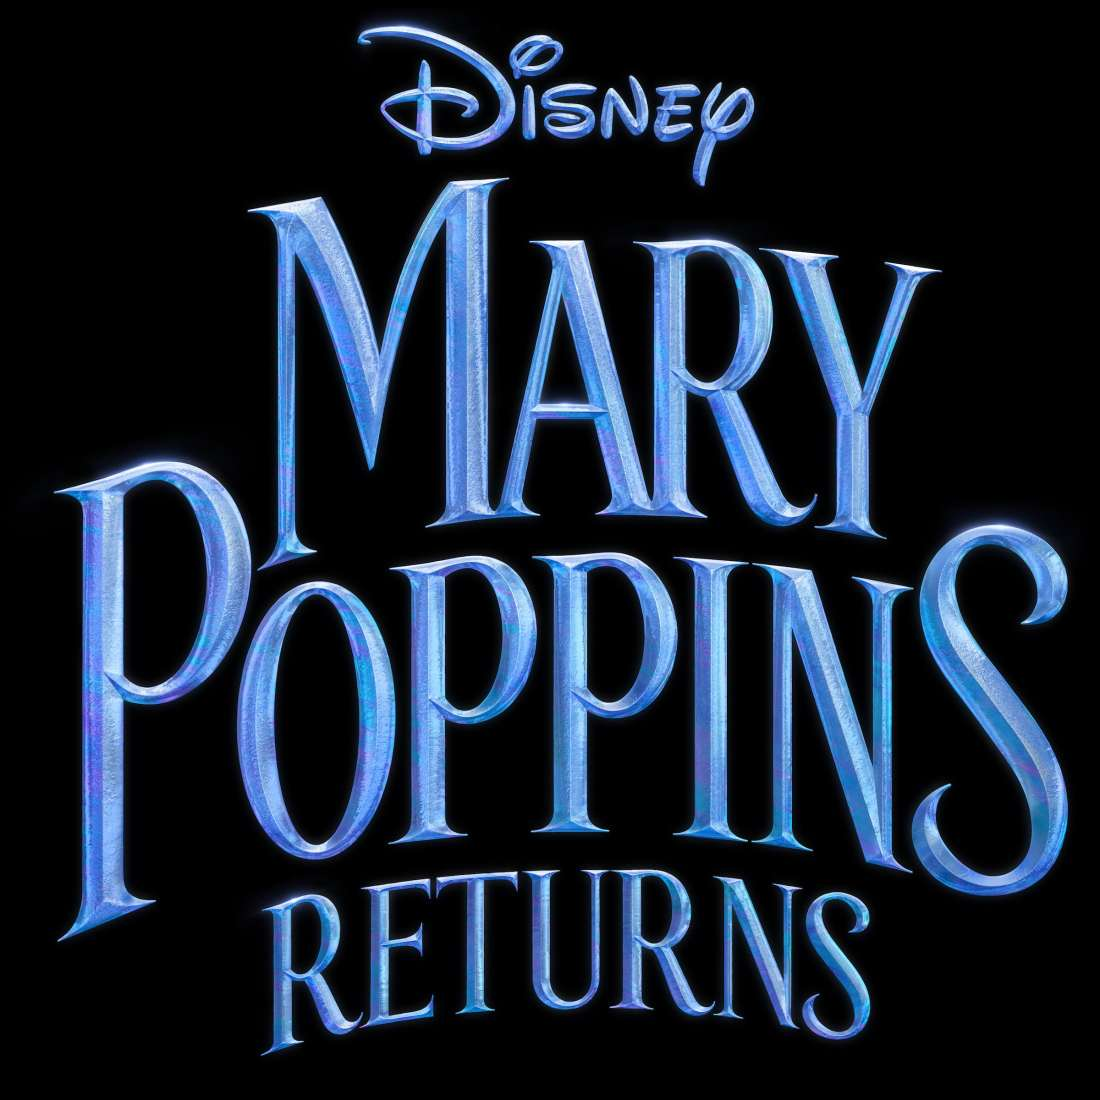 """Mary Poppins (Emily Blunt) returns to the Banks home after many years and uses her magical skills to help the now grown up Michael and Jane rediscover the joy and wonder missing in their lives in MARY POPPINS RETURNS, directed by Rob Marshall. """"Mary Poppins Returns"""" will be released in U.S. theaters on December 25, 2018."""